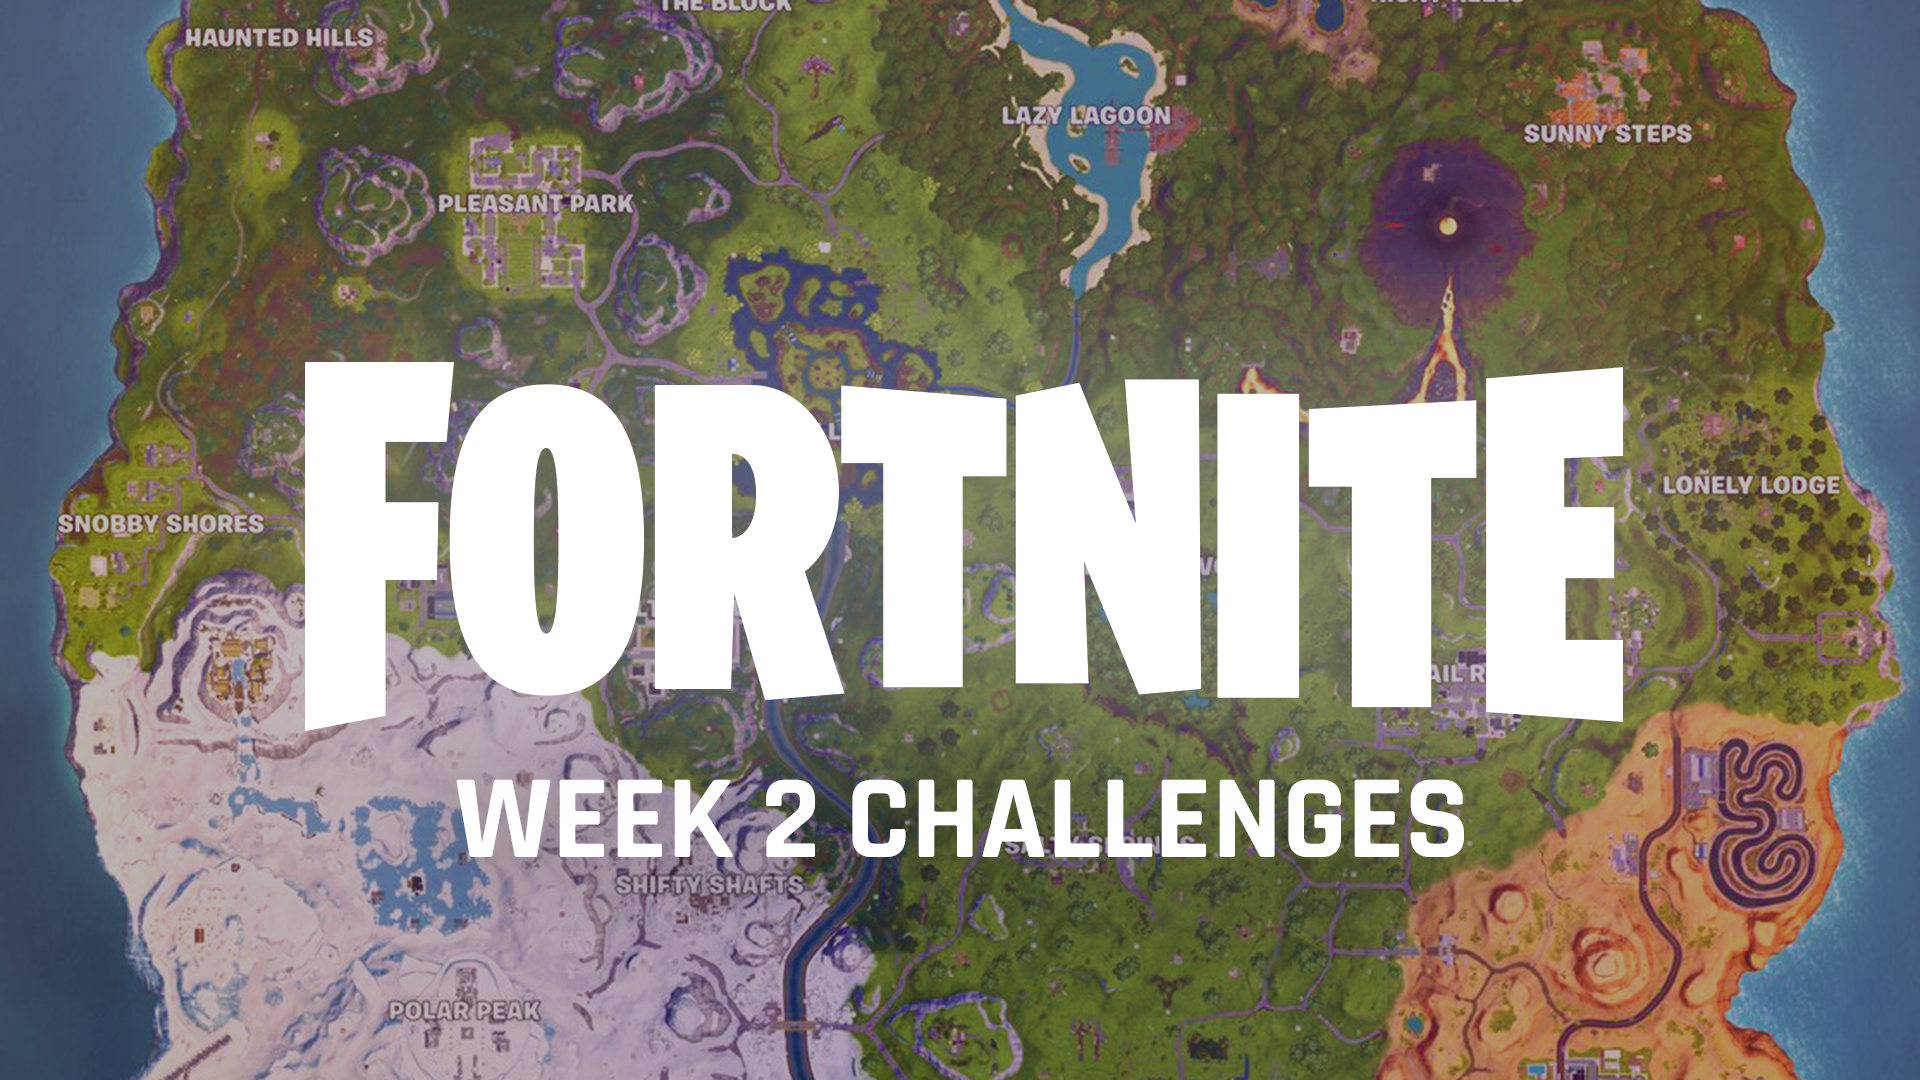 fortnite week 2 challenges how to find apples furthest north south east west points sporting news - fortnite eliminations at salty springs or haunted hills